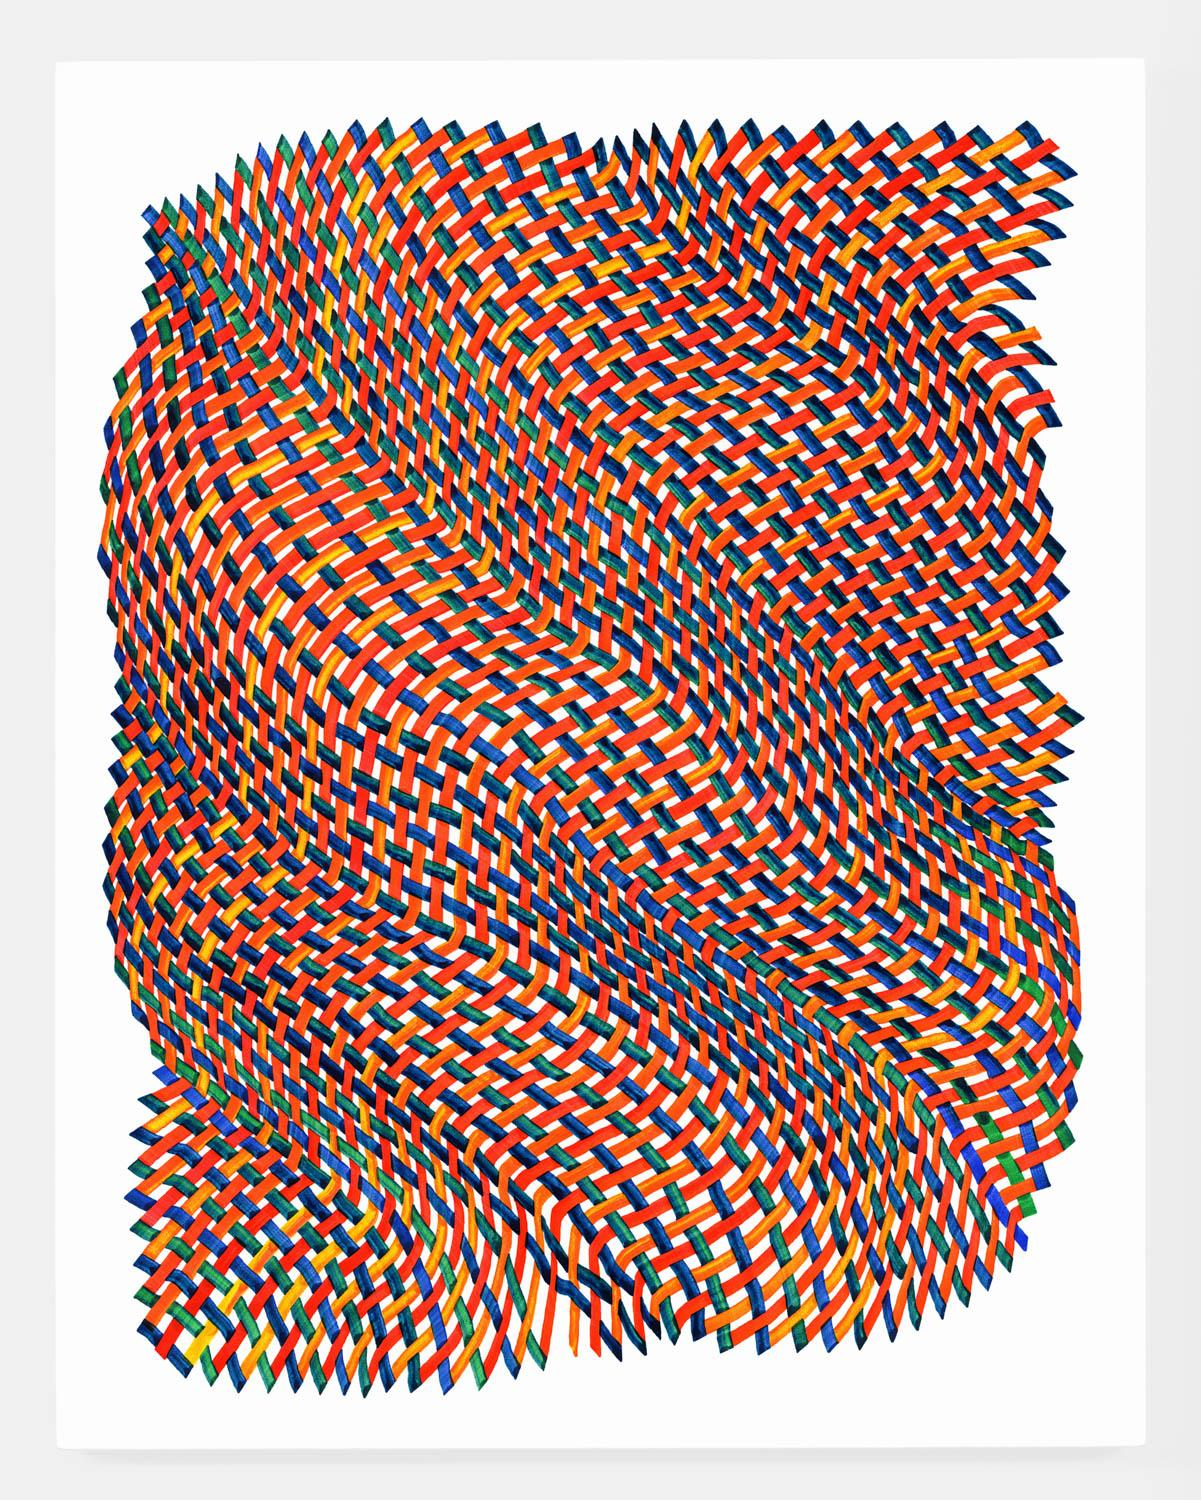 Woven lines 38 - abstract red blue green yellow dominant ink drawing on paper